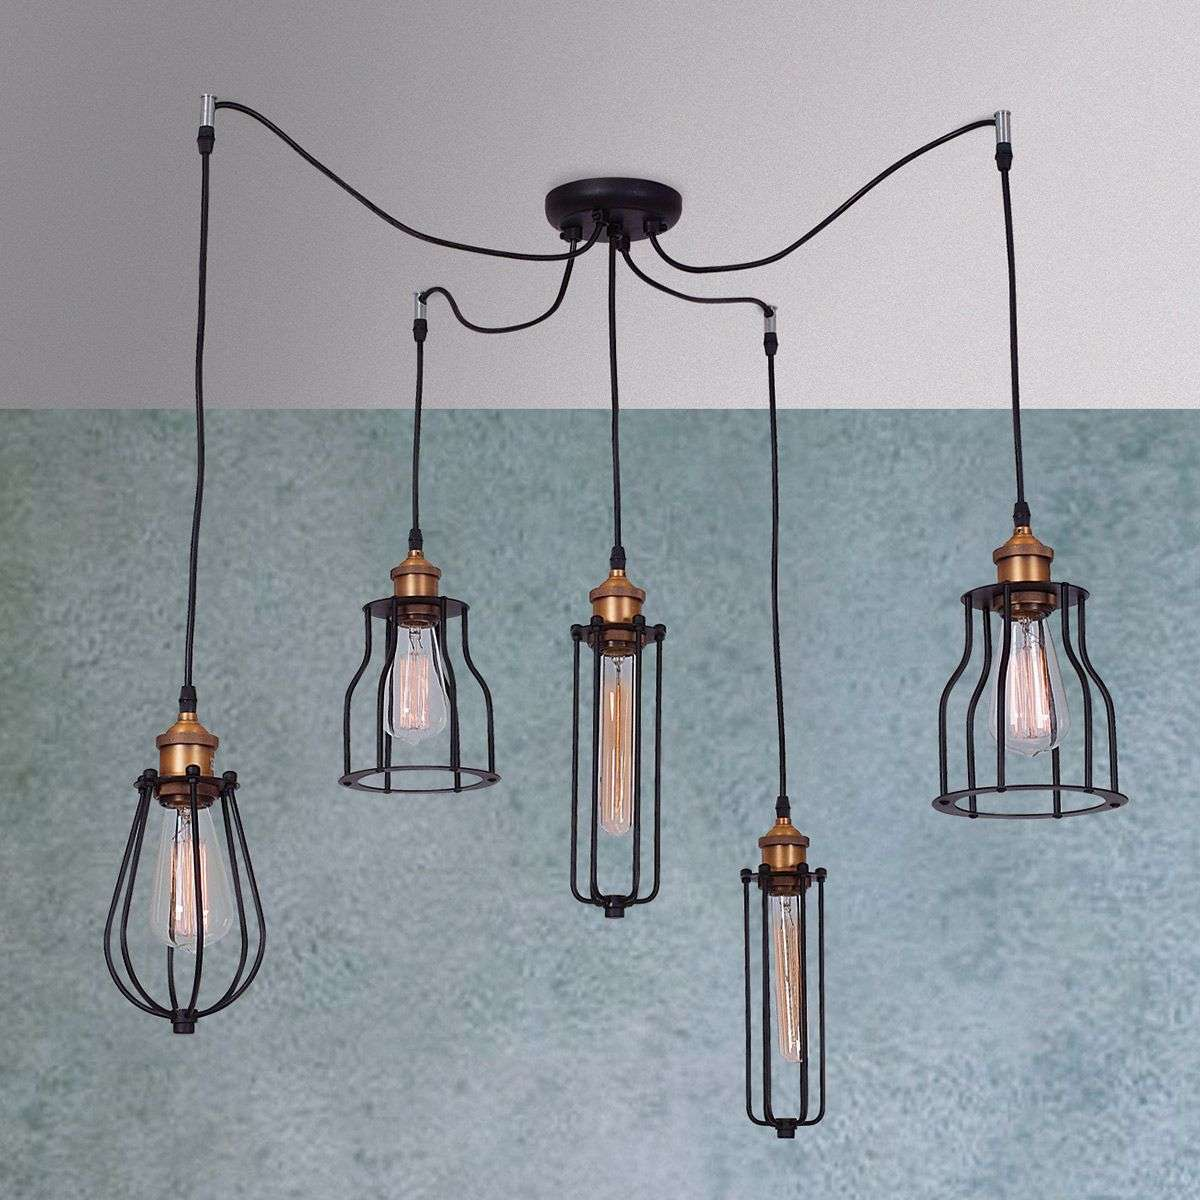 5-light hanging light Ustiko with rustic charm-1054115-31